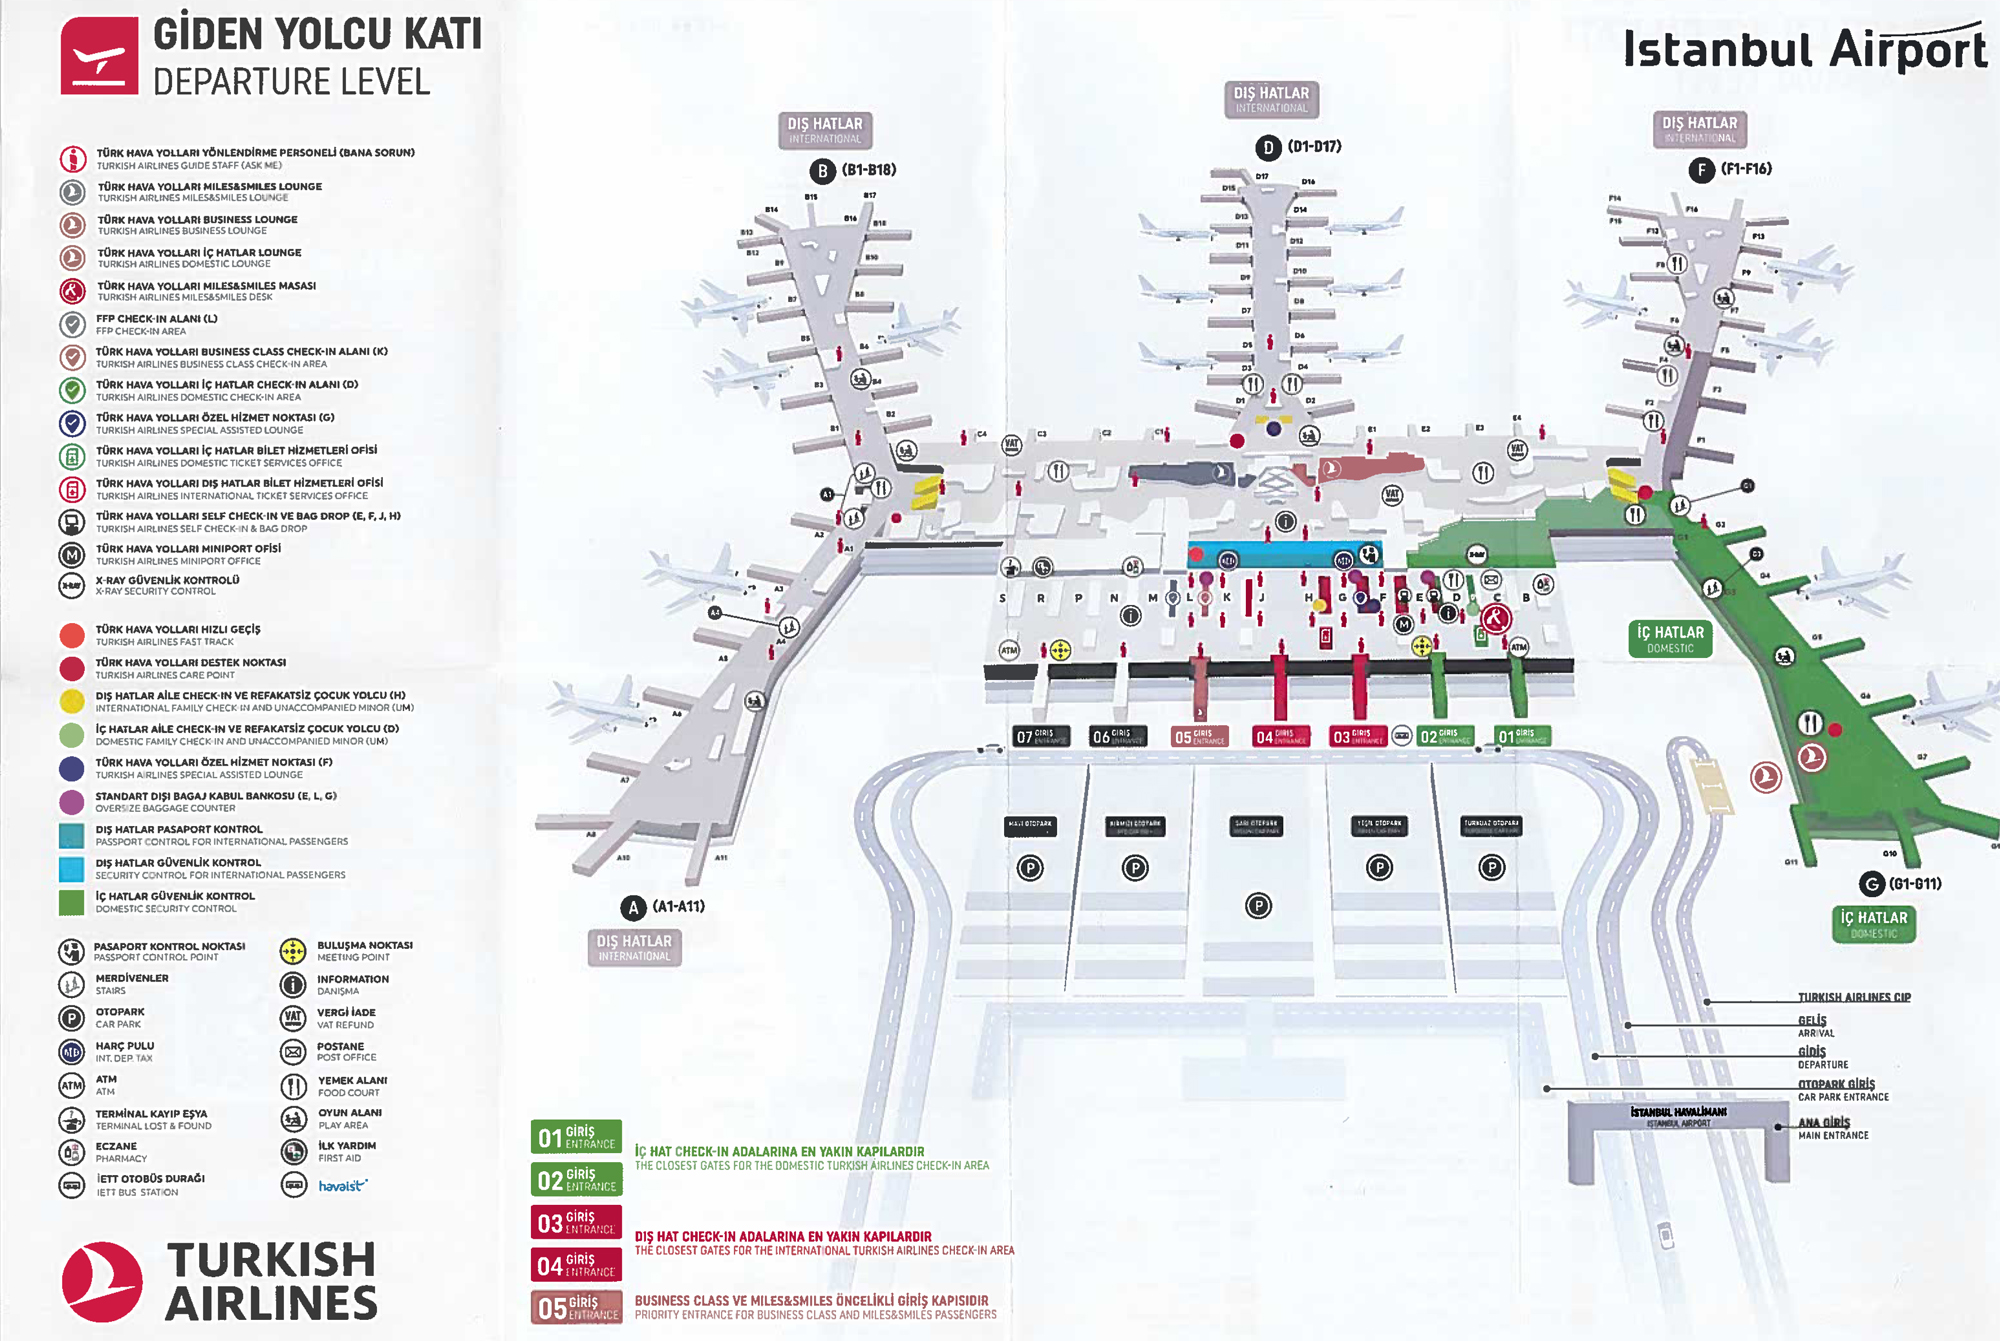 ataturk international airport map Istanbul New Airport Plan My Travels ataturk international airport map